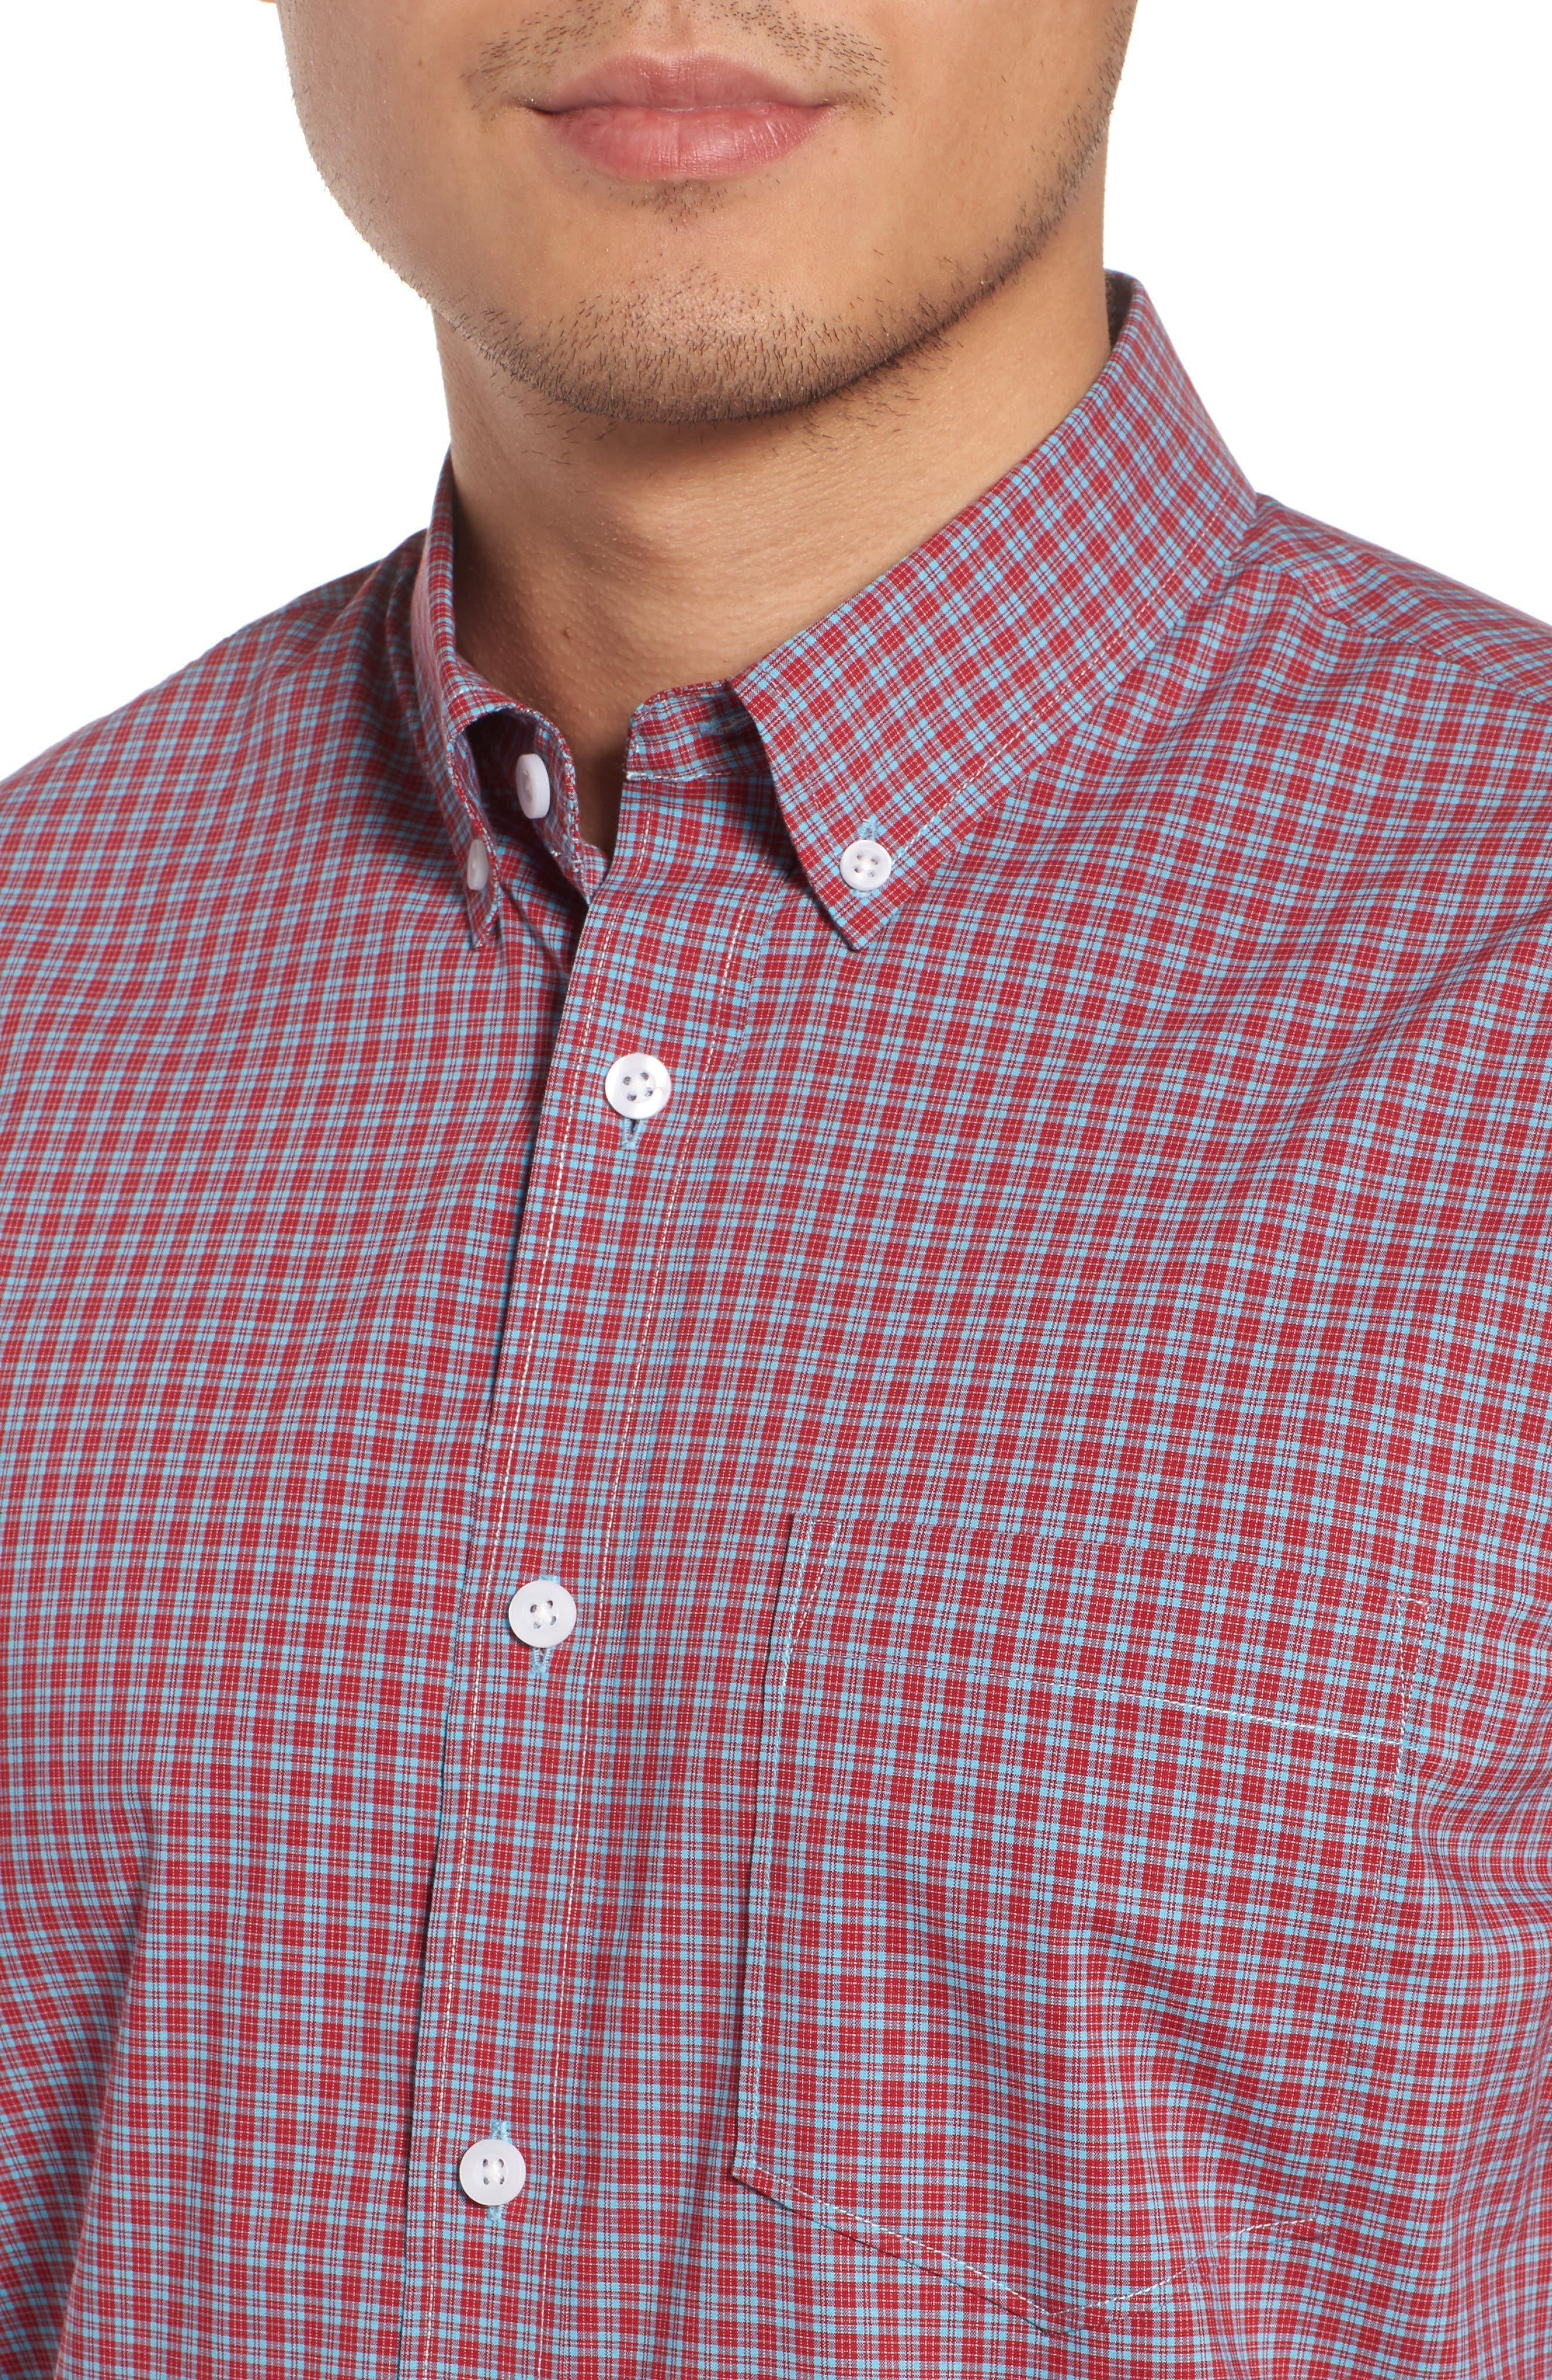 Tech-Smart Trim Fit Check Sport Shirt,                             Alternate thumbnail 2, color,                             Red Pompeii Blue Micro Check